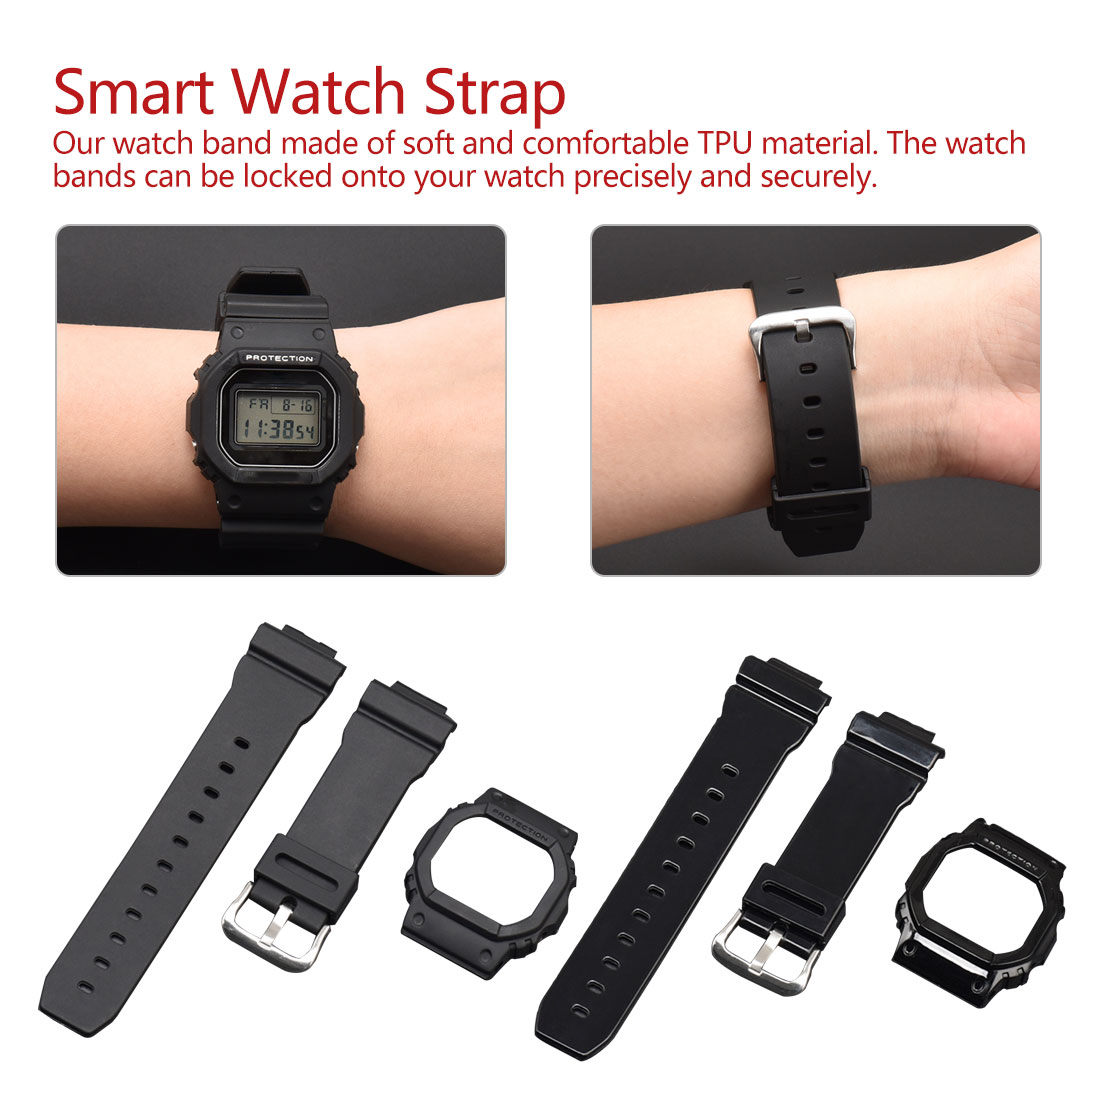 Replacement Band Bracelet Strap Accessories Watch Band Case For Casio G-Shock DW-5600 Black Watch Tpu Strap Sports Strap